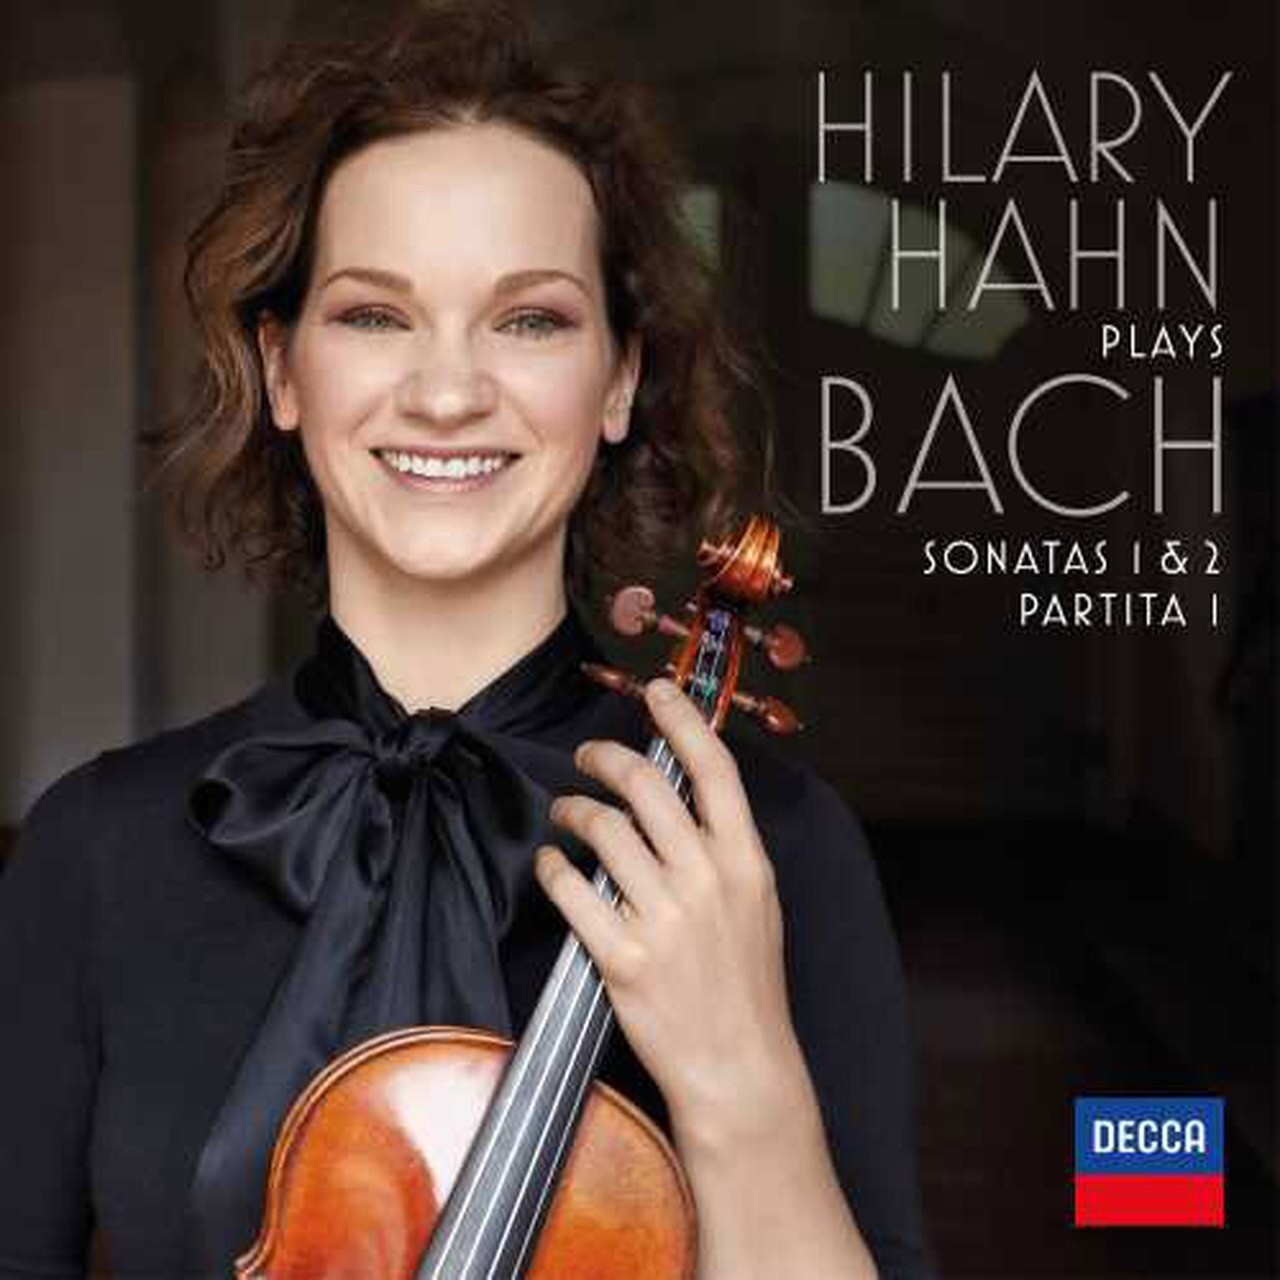 Hilary Hahn - Hilary Hahn Plays Bach Sonatas 1 & 2; Partita 1